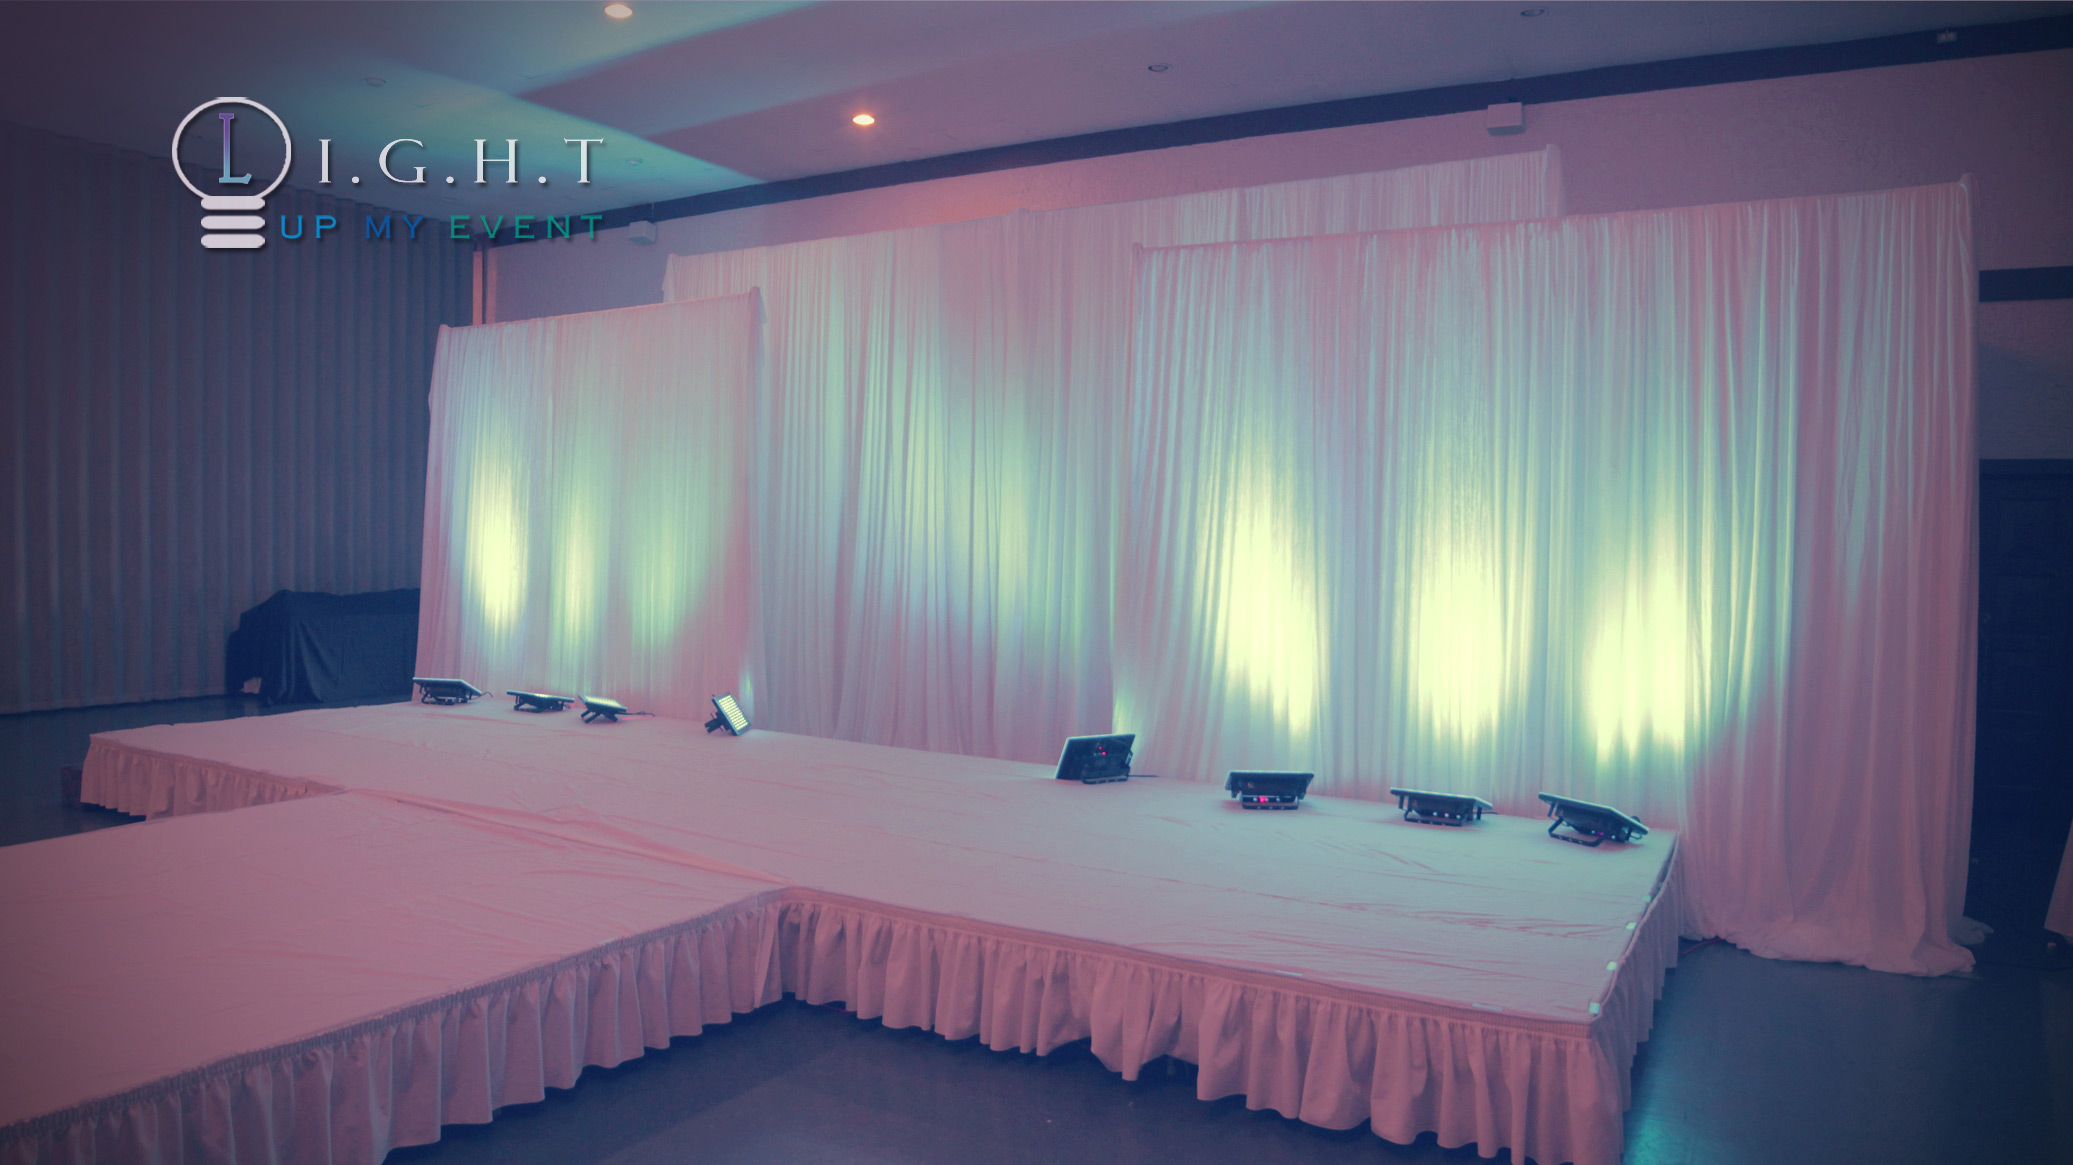 Bed Drape Fashion Show Runway Draping Imperial House Clinton Twp